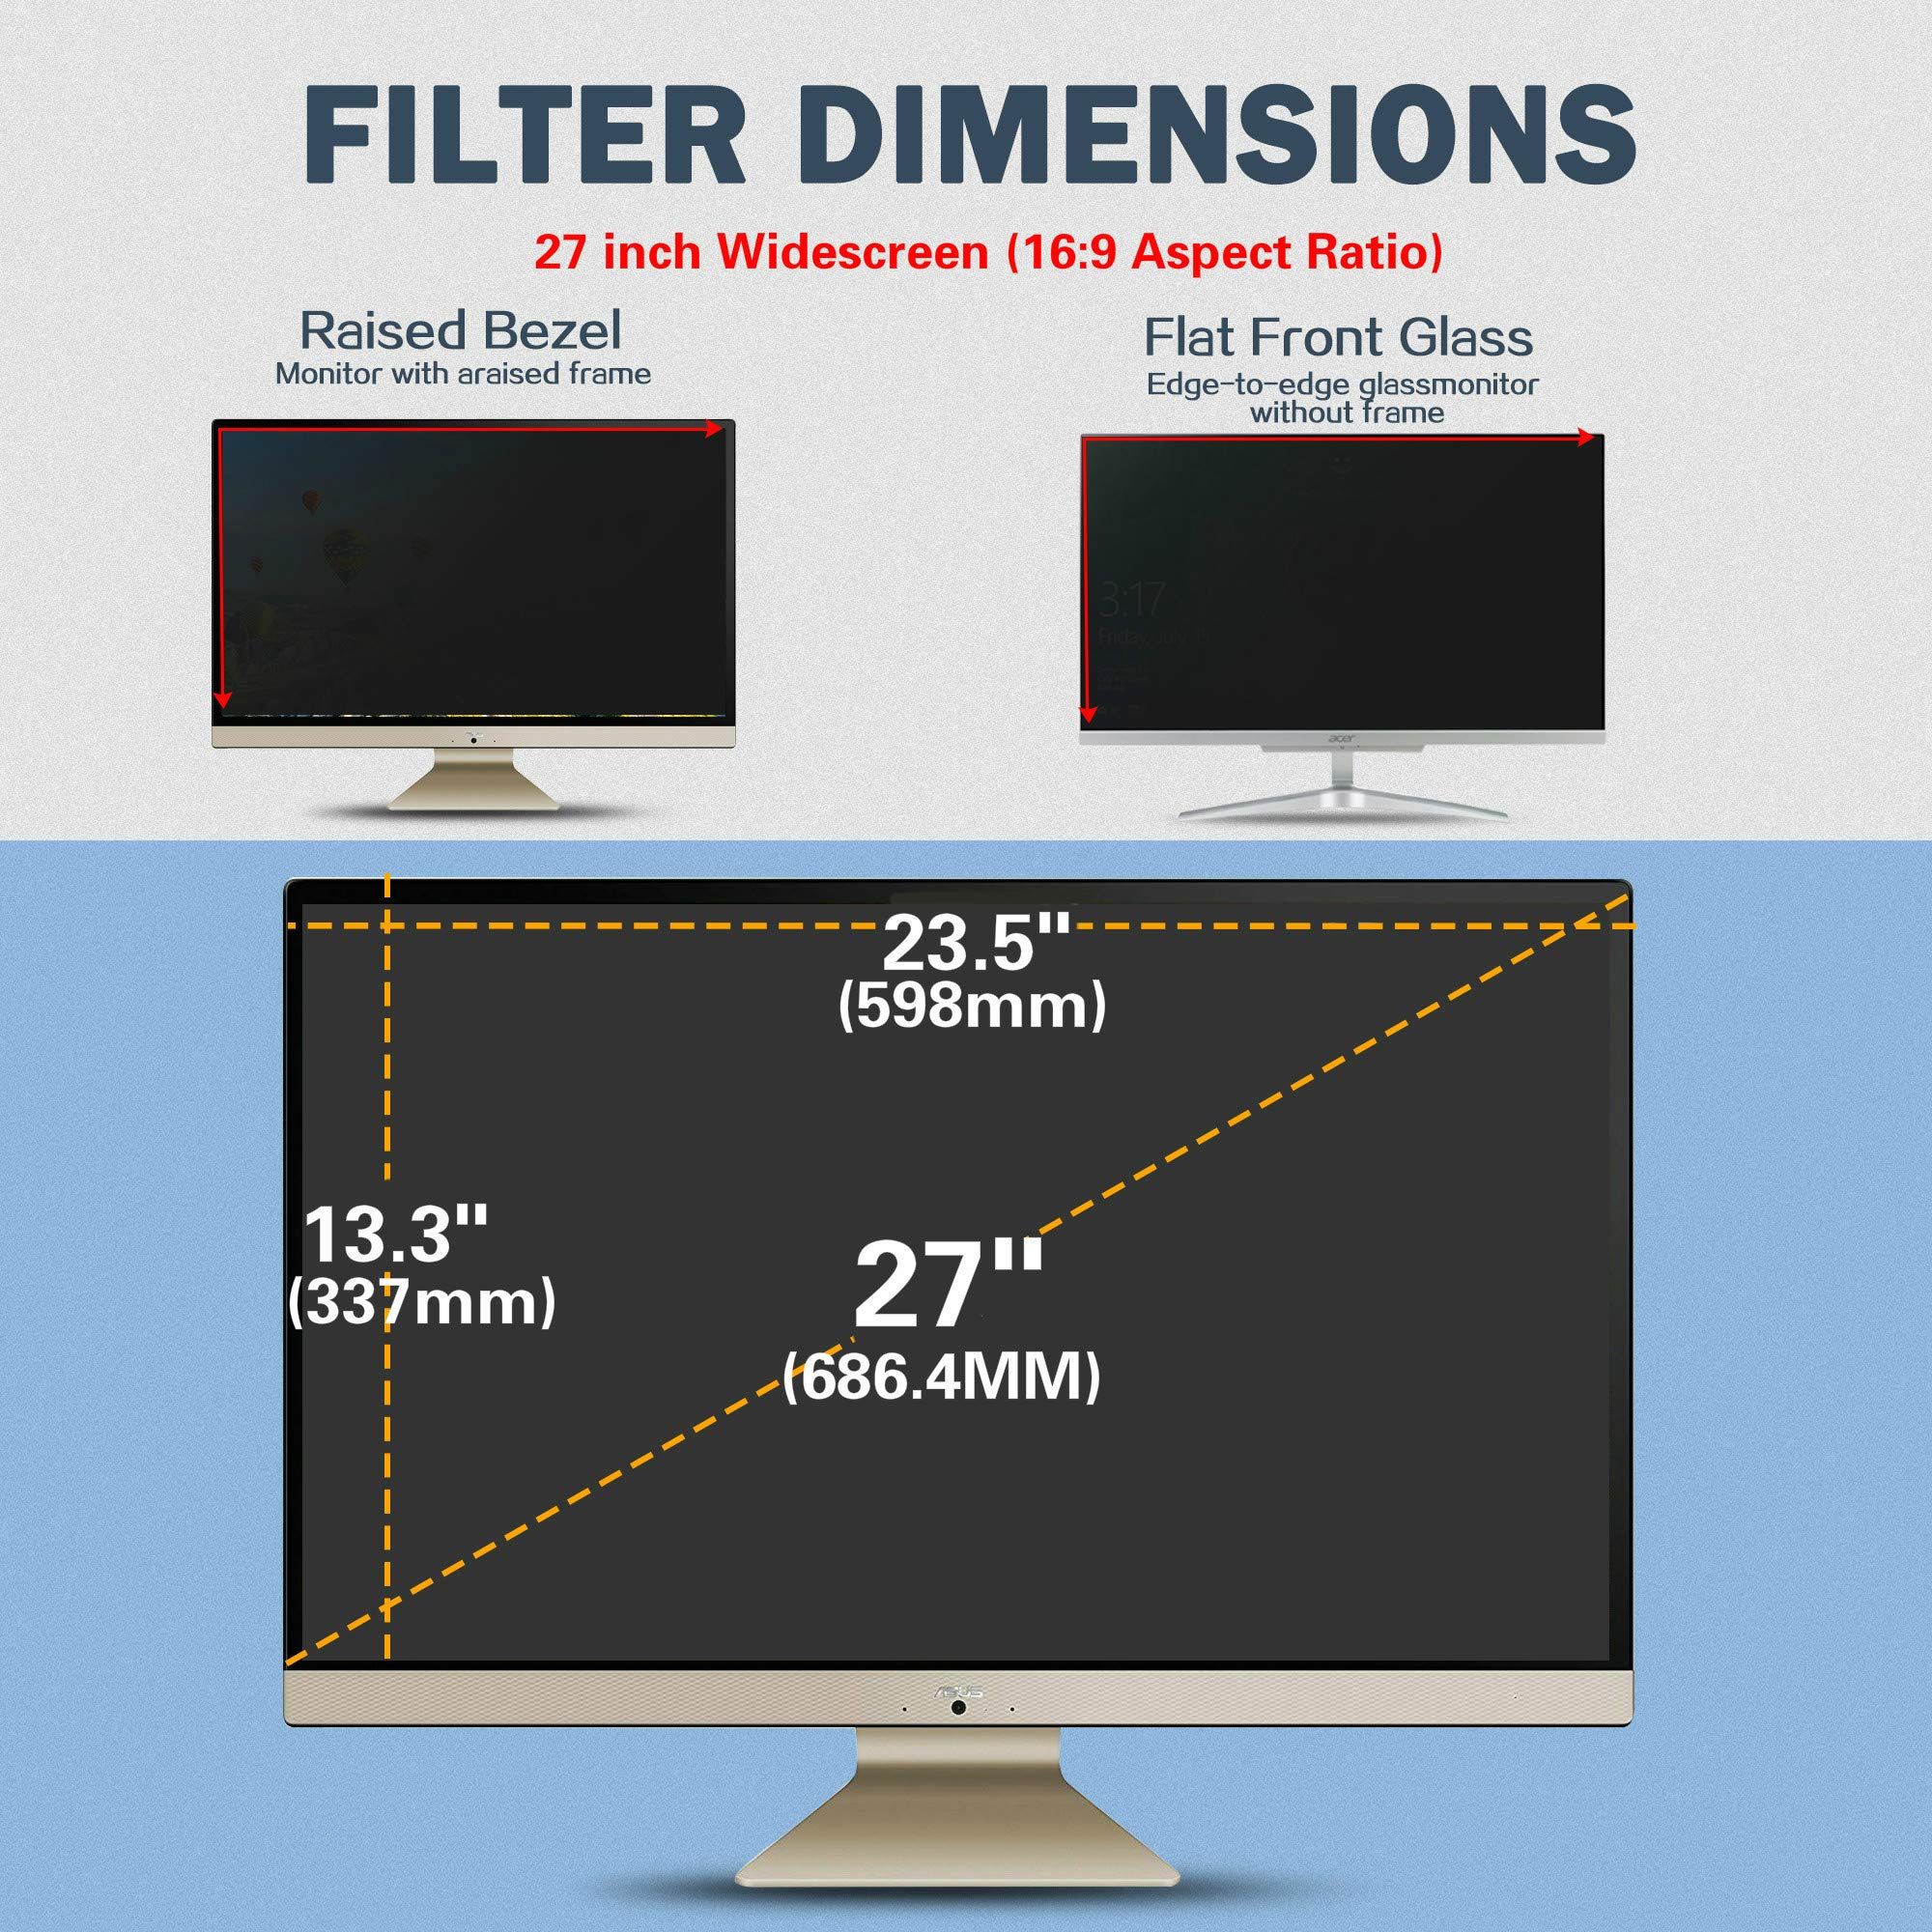 SKYLARKING 27 inches Computer Privacy Screen Filter, Anti-Spy Anti-Glare Screen Protector Film Compatible 27'' Widescreen Computer LCD Monitor with Aspect Ratio 16:9 (598mm x 337mm) by Skylarking (Image #8)